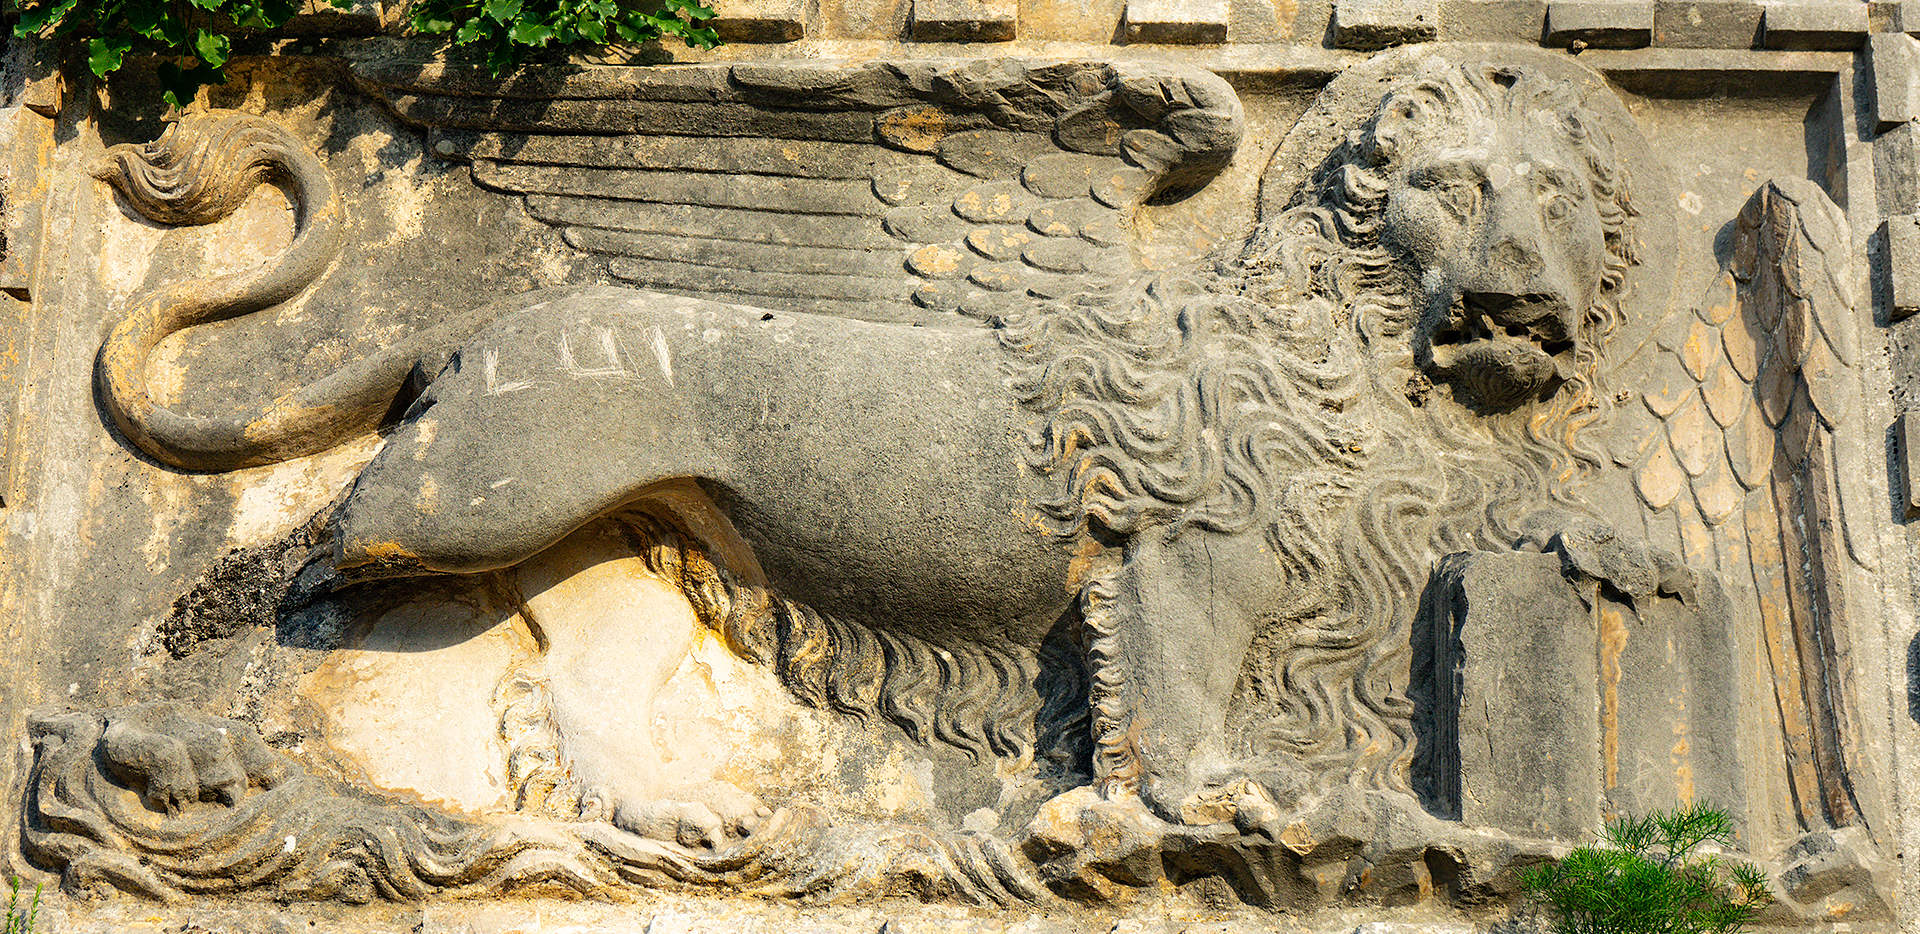 Kotor Fortress Winged Lion Carving